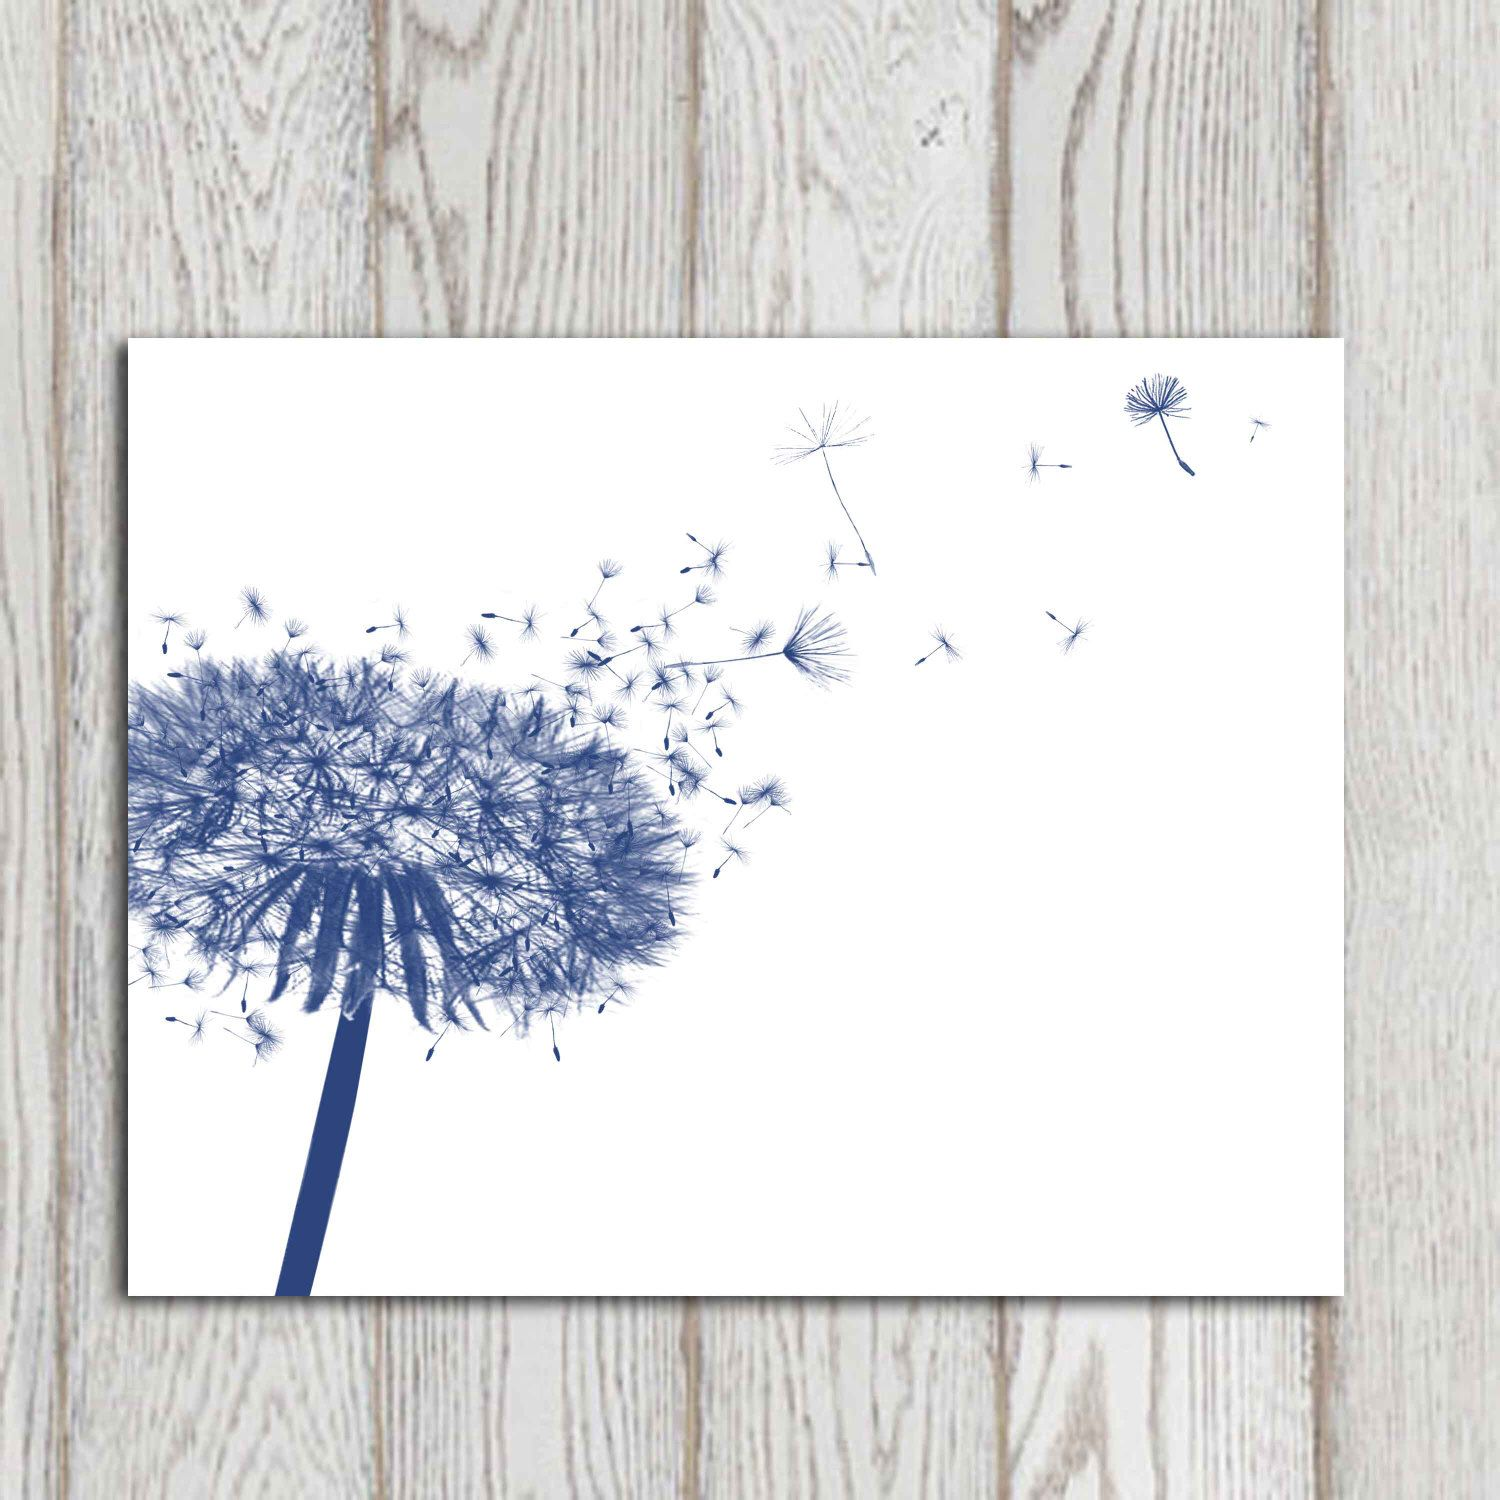 Navy Blue Wall Decor dandelion decor print navy blue home decor navy bedroom decor